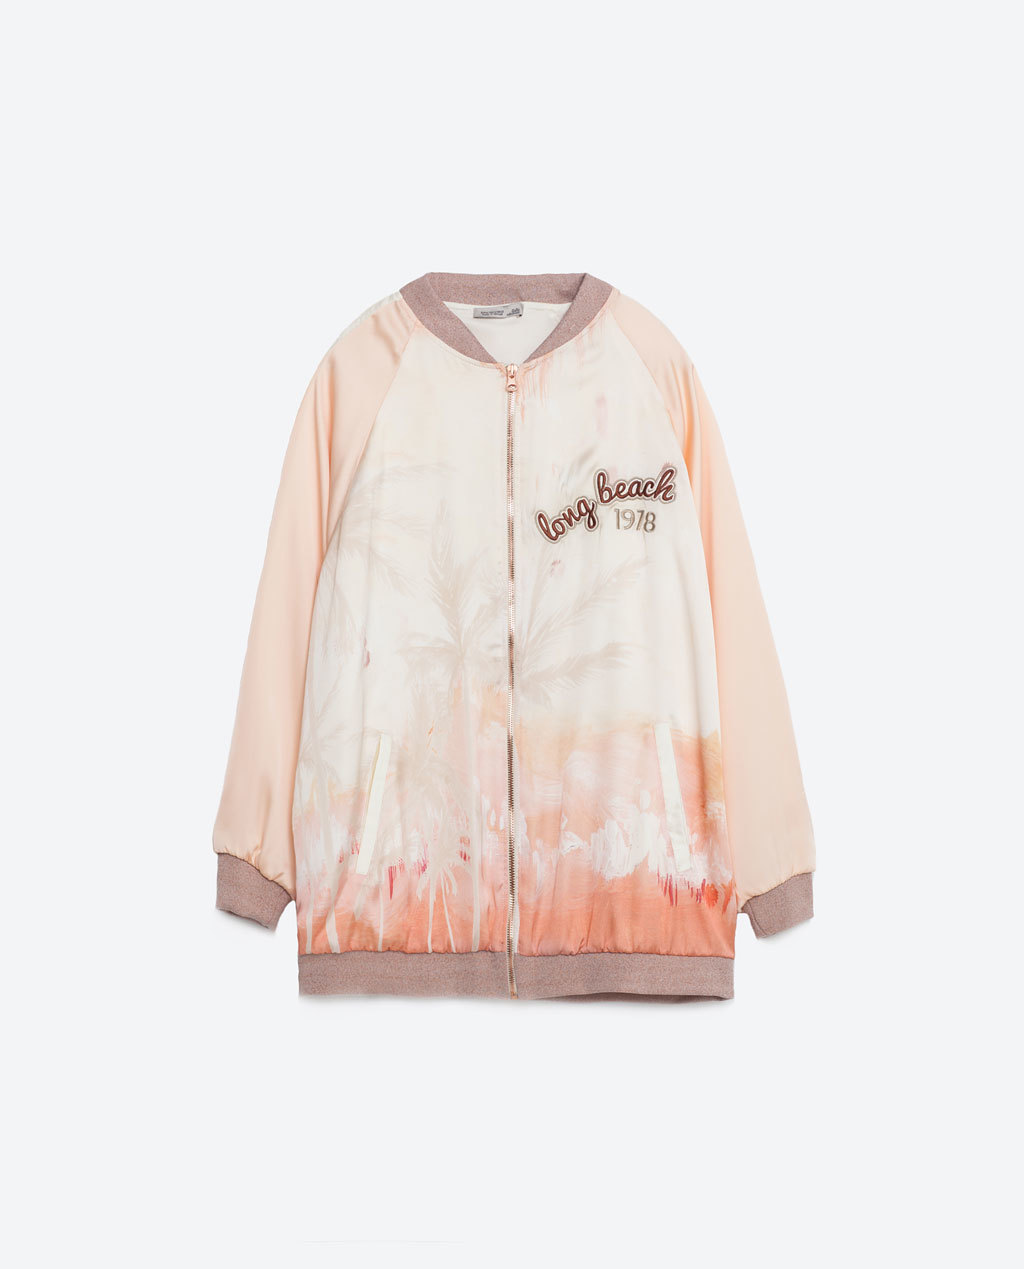 Patch Print Bomber Jacket - collar: round collar/collarless; pattern: tie dye; style: bomber; predominant colour: nude; secondary colour: taupe; occasions: casual; length: standard; fit: straight cut (boxy); fibres: polyester/polyamide - 100%; sleeve length: long sleeve; sleeve style: standard; collar break: high; pattern type: fabric; pattern size: standard; texture group: other - light to midweight; season: s/s 2016; wardrobe: highlight